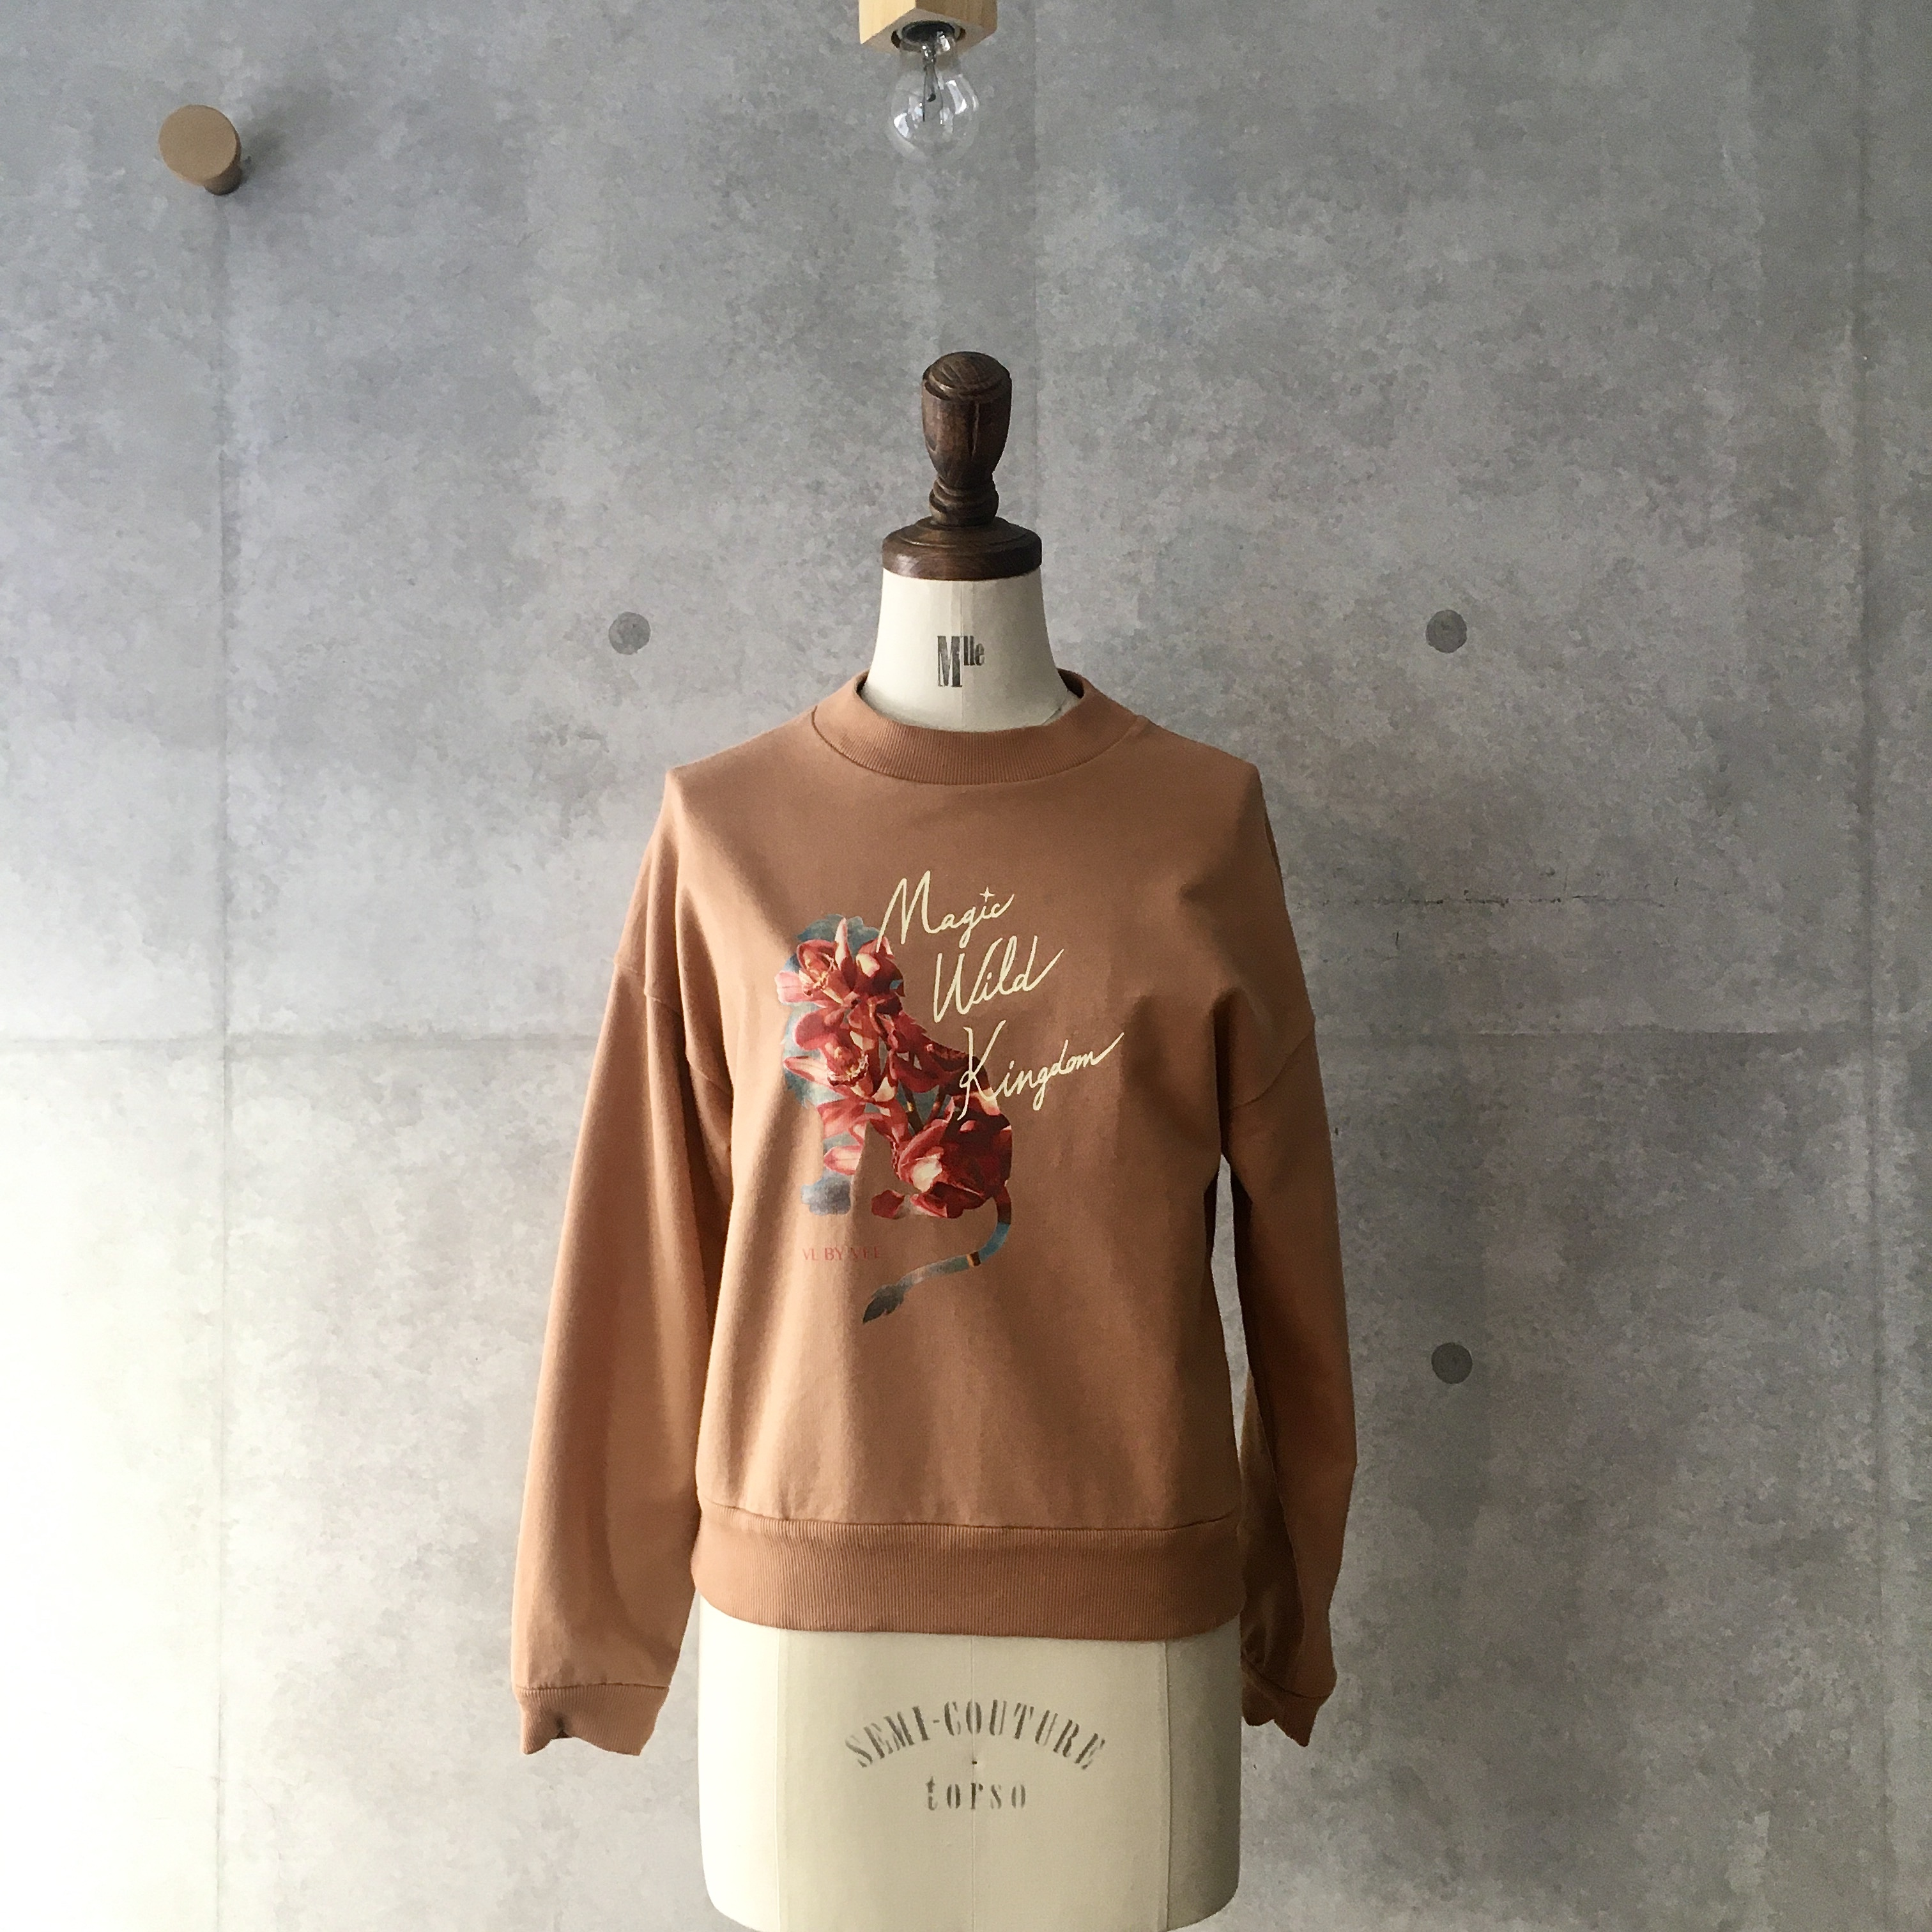 VL BY VEE Magic Wild Kingdom Sweatshirt